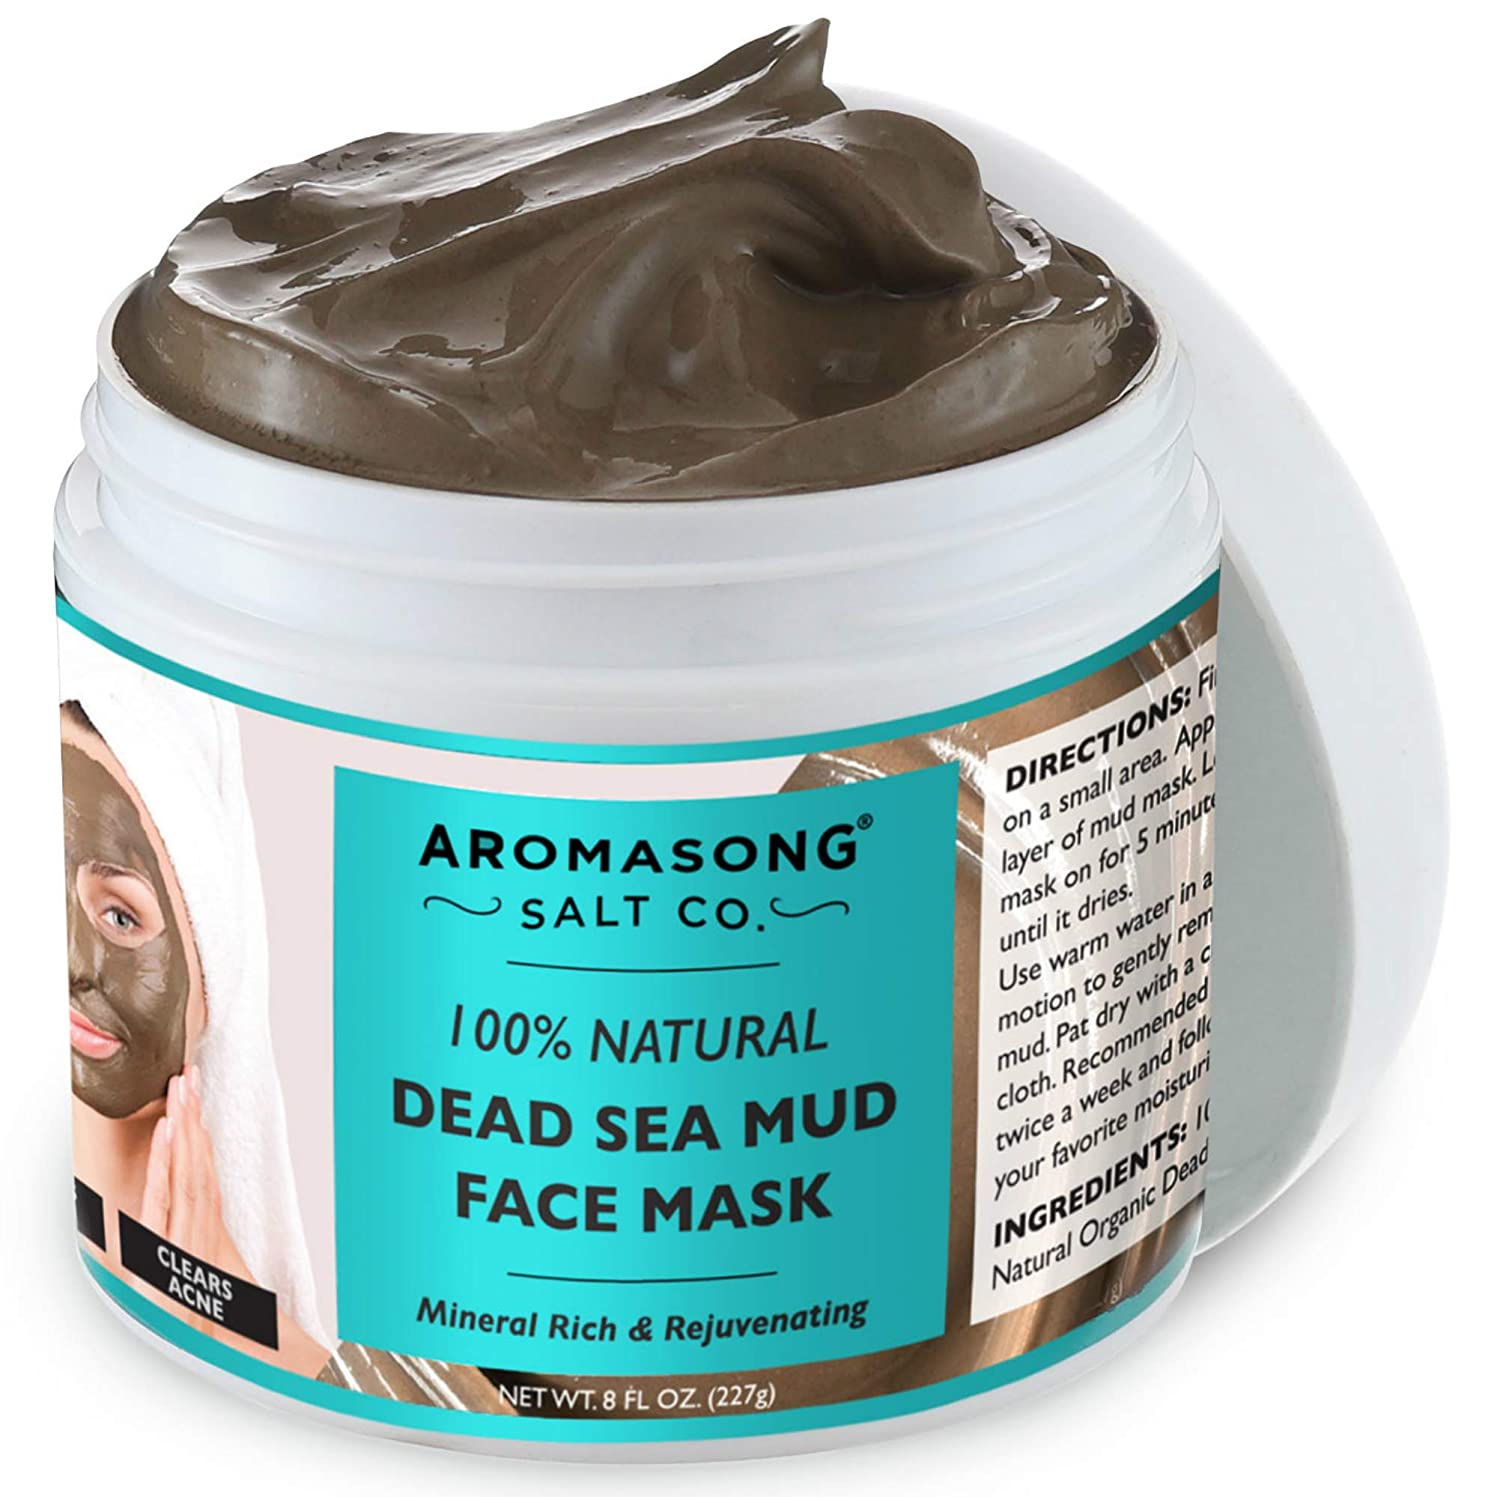 100% PURE & Natural Dead Sea Mud Mask NO INGREDIENTS ADDED - Acne Treatment, Blackhead Remover, Anti-Aging, Pore Minimizer Face Mask – Natural Skin Care, Facial Beauty Masks for Women & Men.